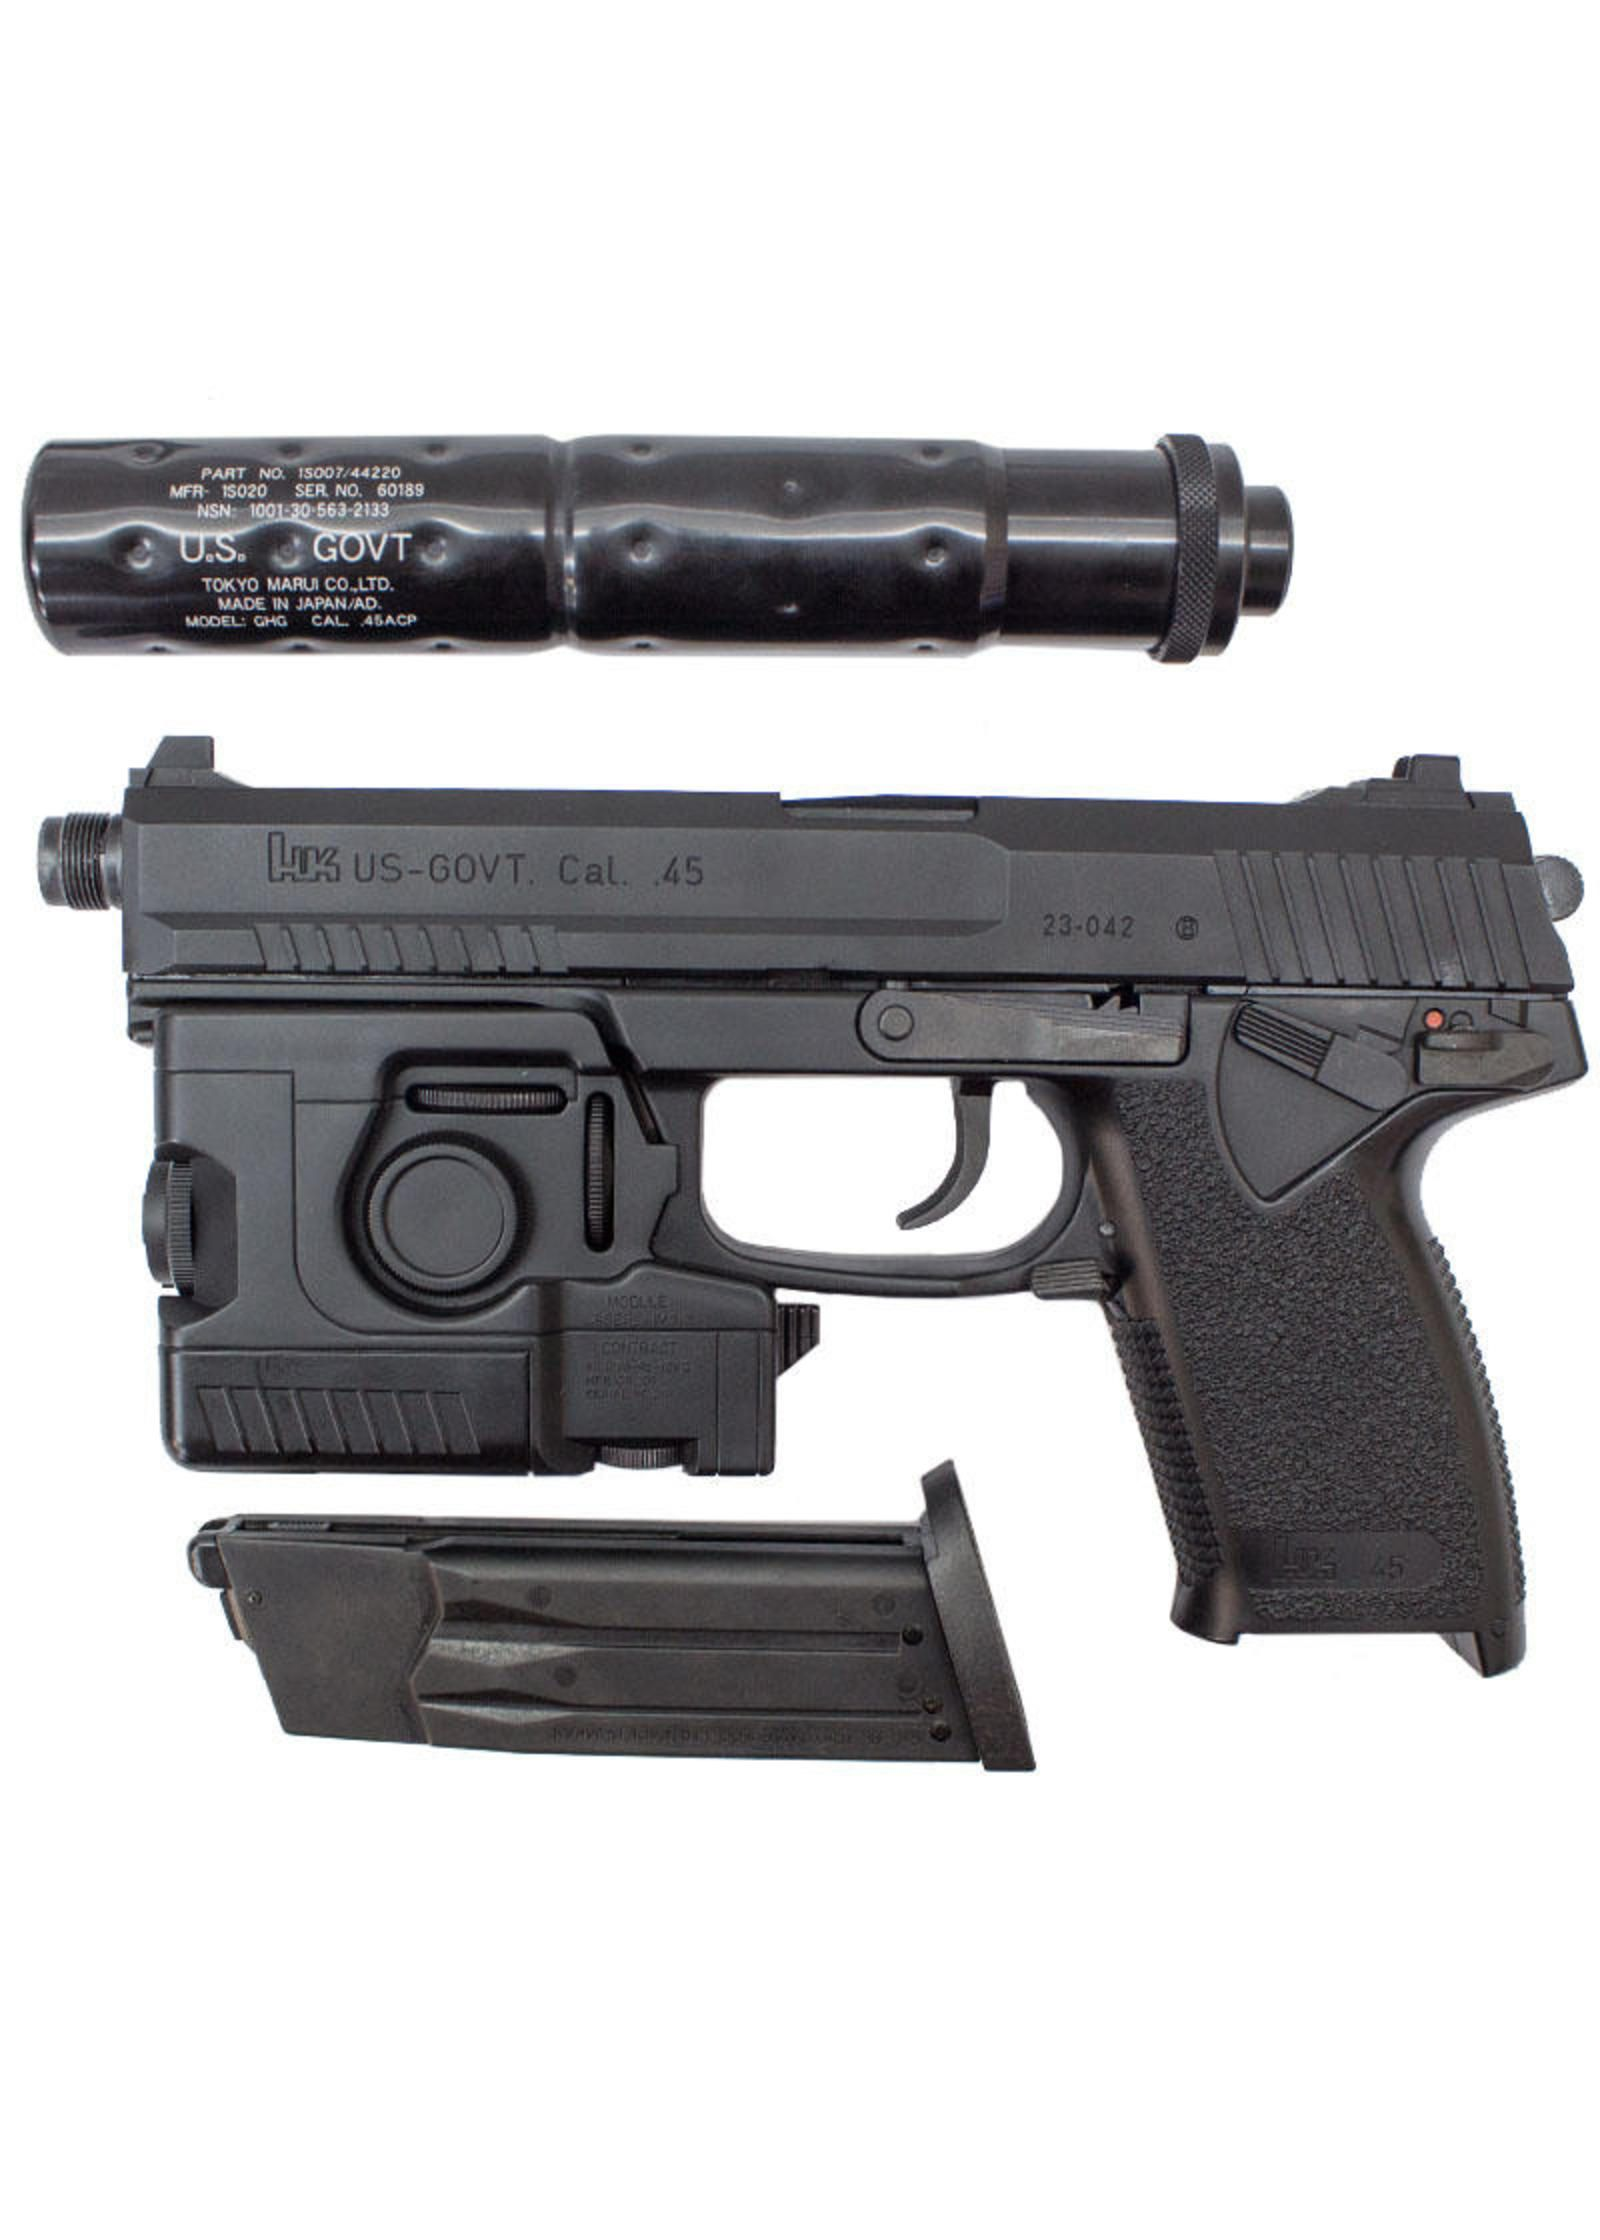 Tokyo marui mk23 socom pistol w lam suppressor black guns tokyo marui mk23 socom pistol w lam suppressor black thecheapjerseys Image collections